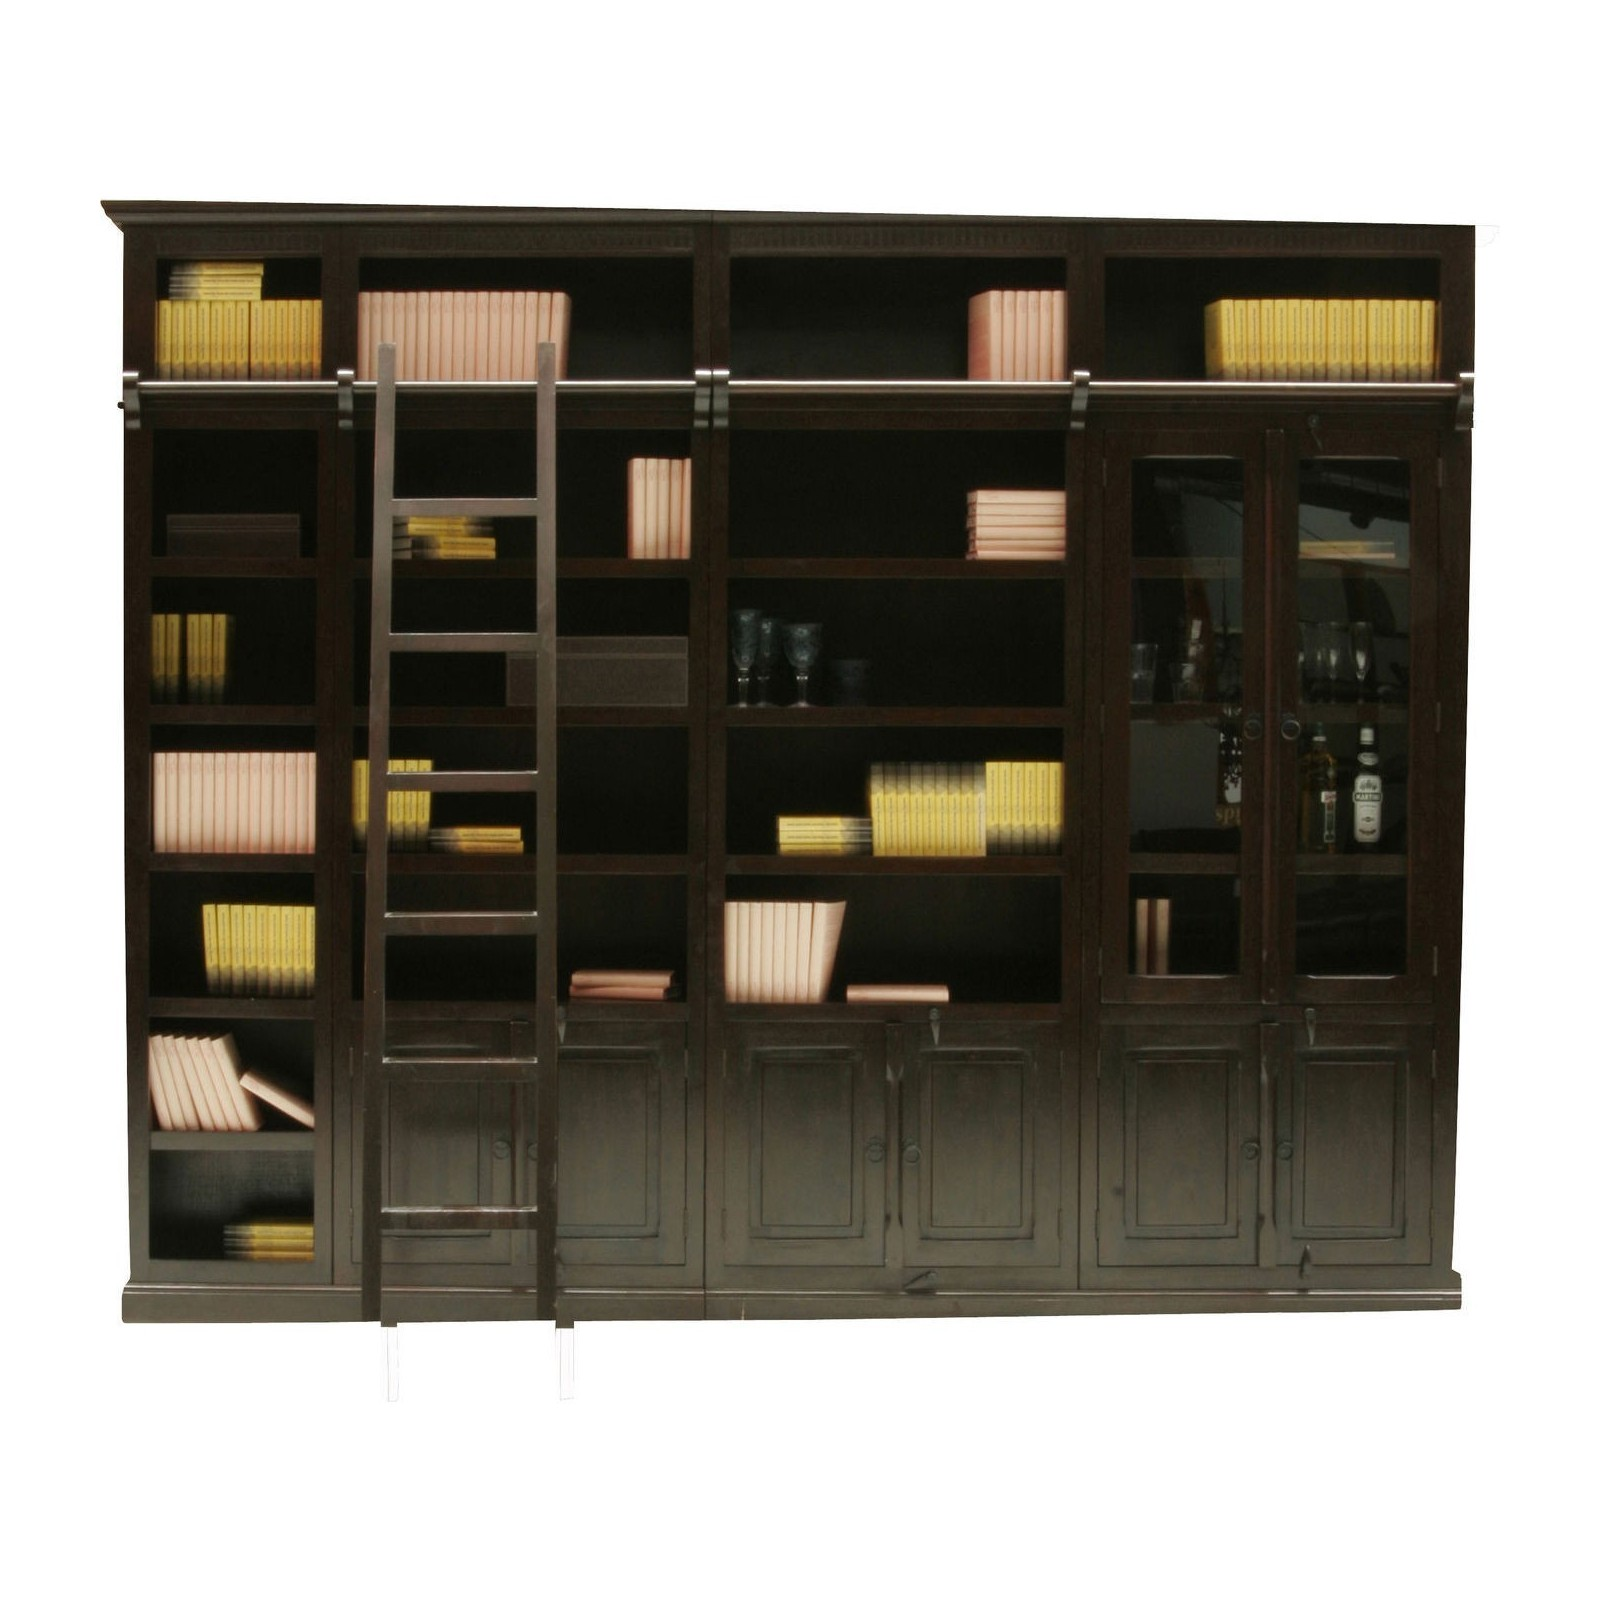 element bibliotheque cabana avec portes kare design. Black Bedroom Furniture Sets. Home Design Ideas